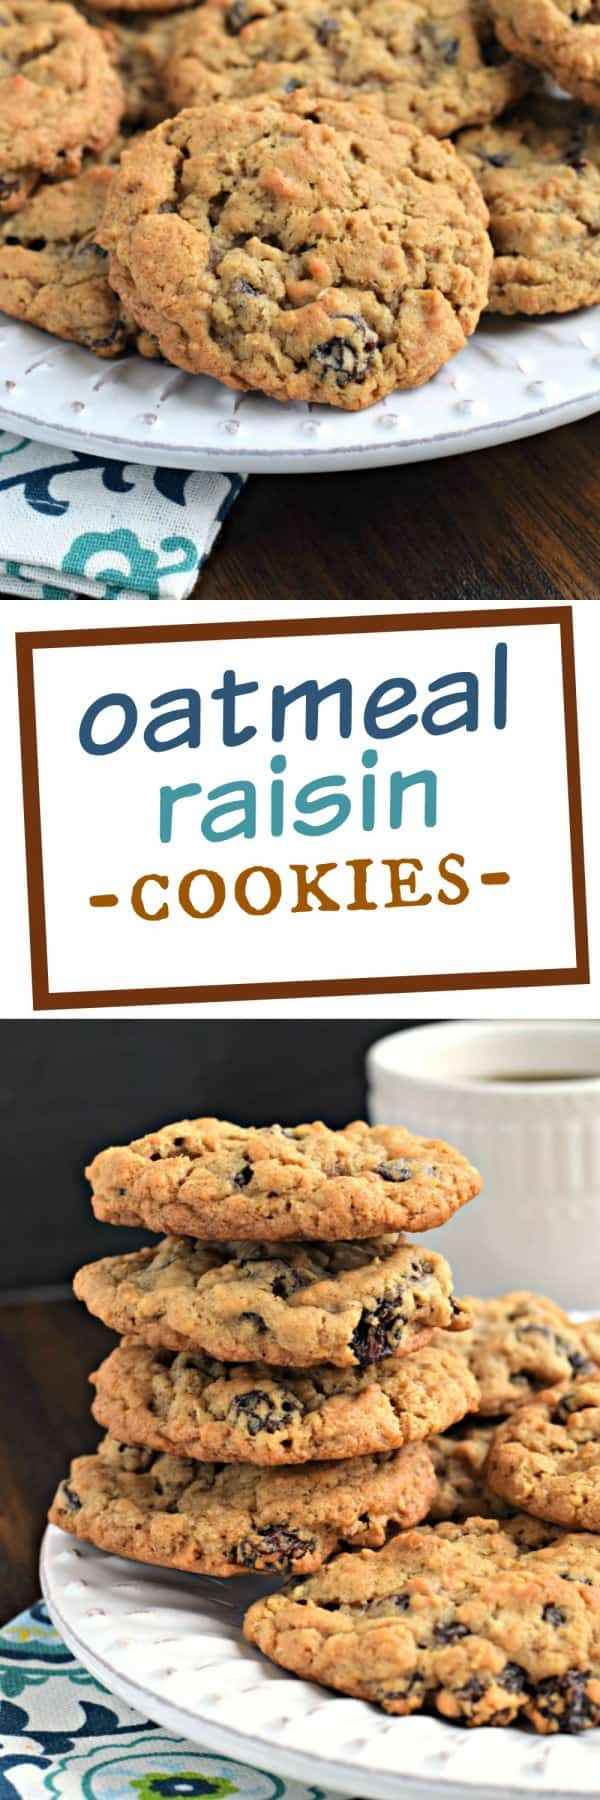 Soft and chewy, old fashioned Oatmeal Raisin Cookies with a hint of cinnamon and nutmeg! Delicious, homemade cookies like you enjoyed in childhood!